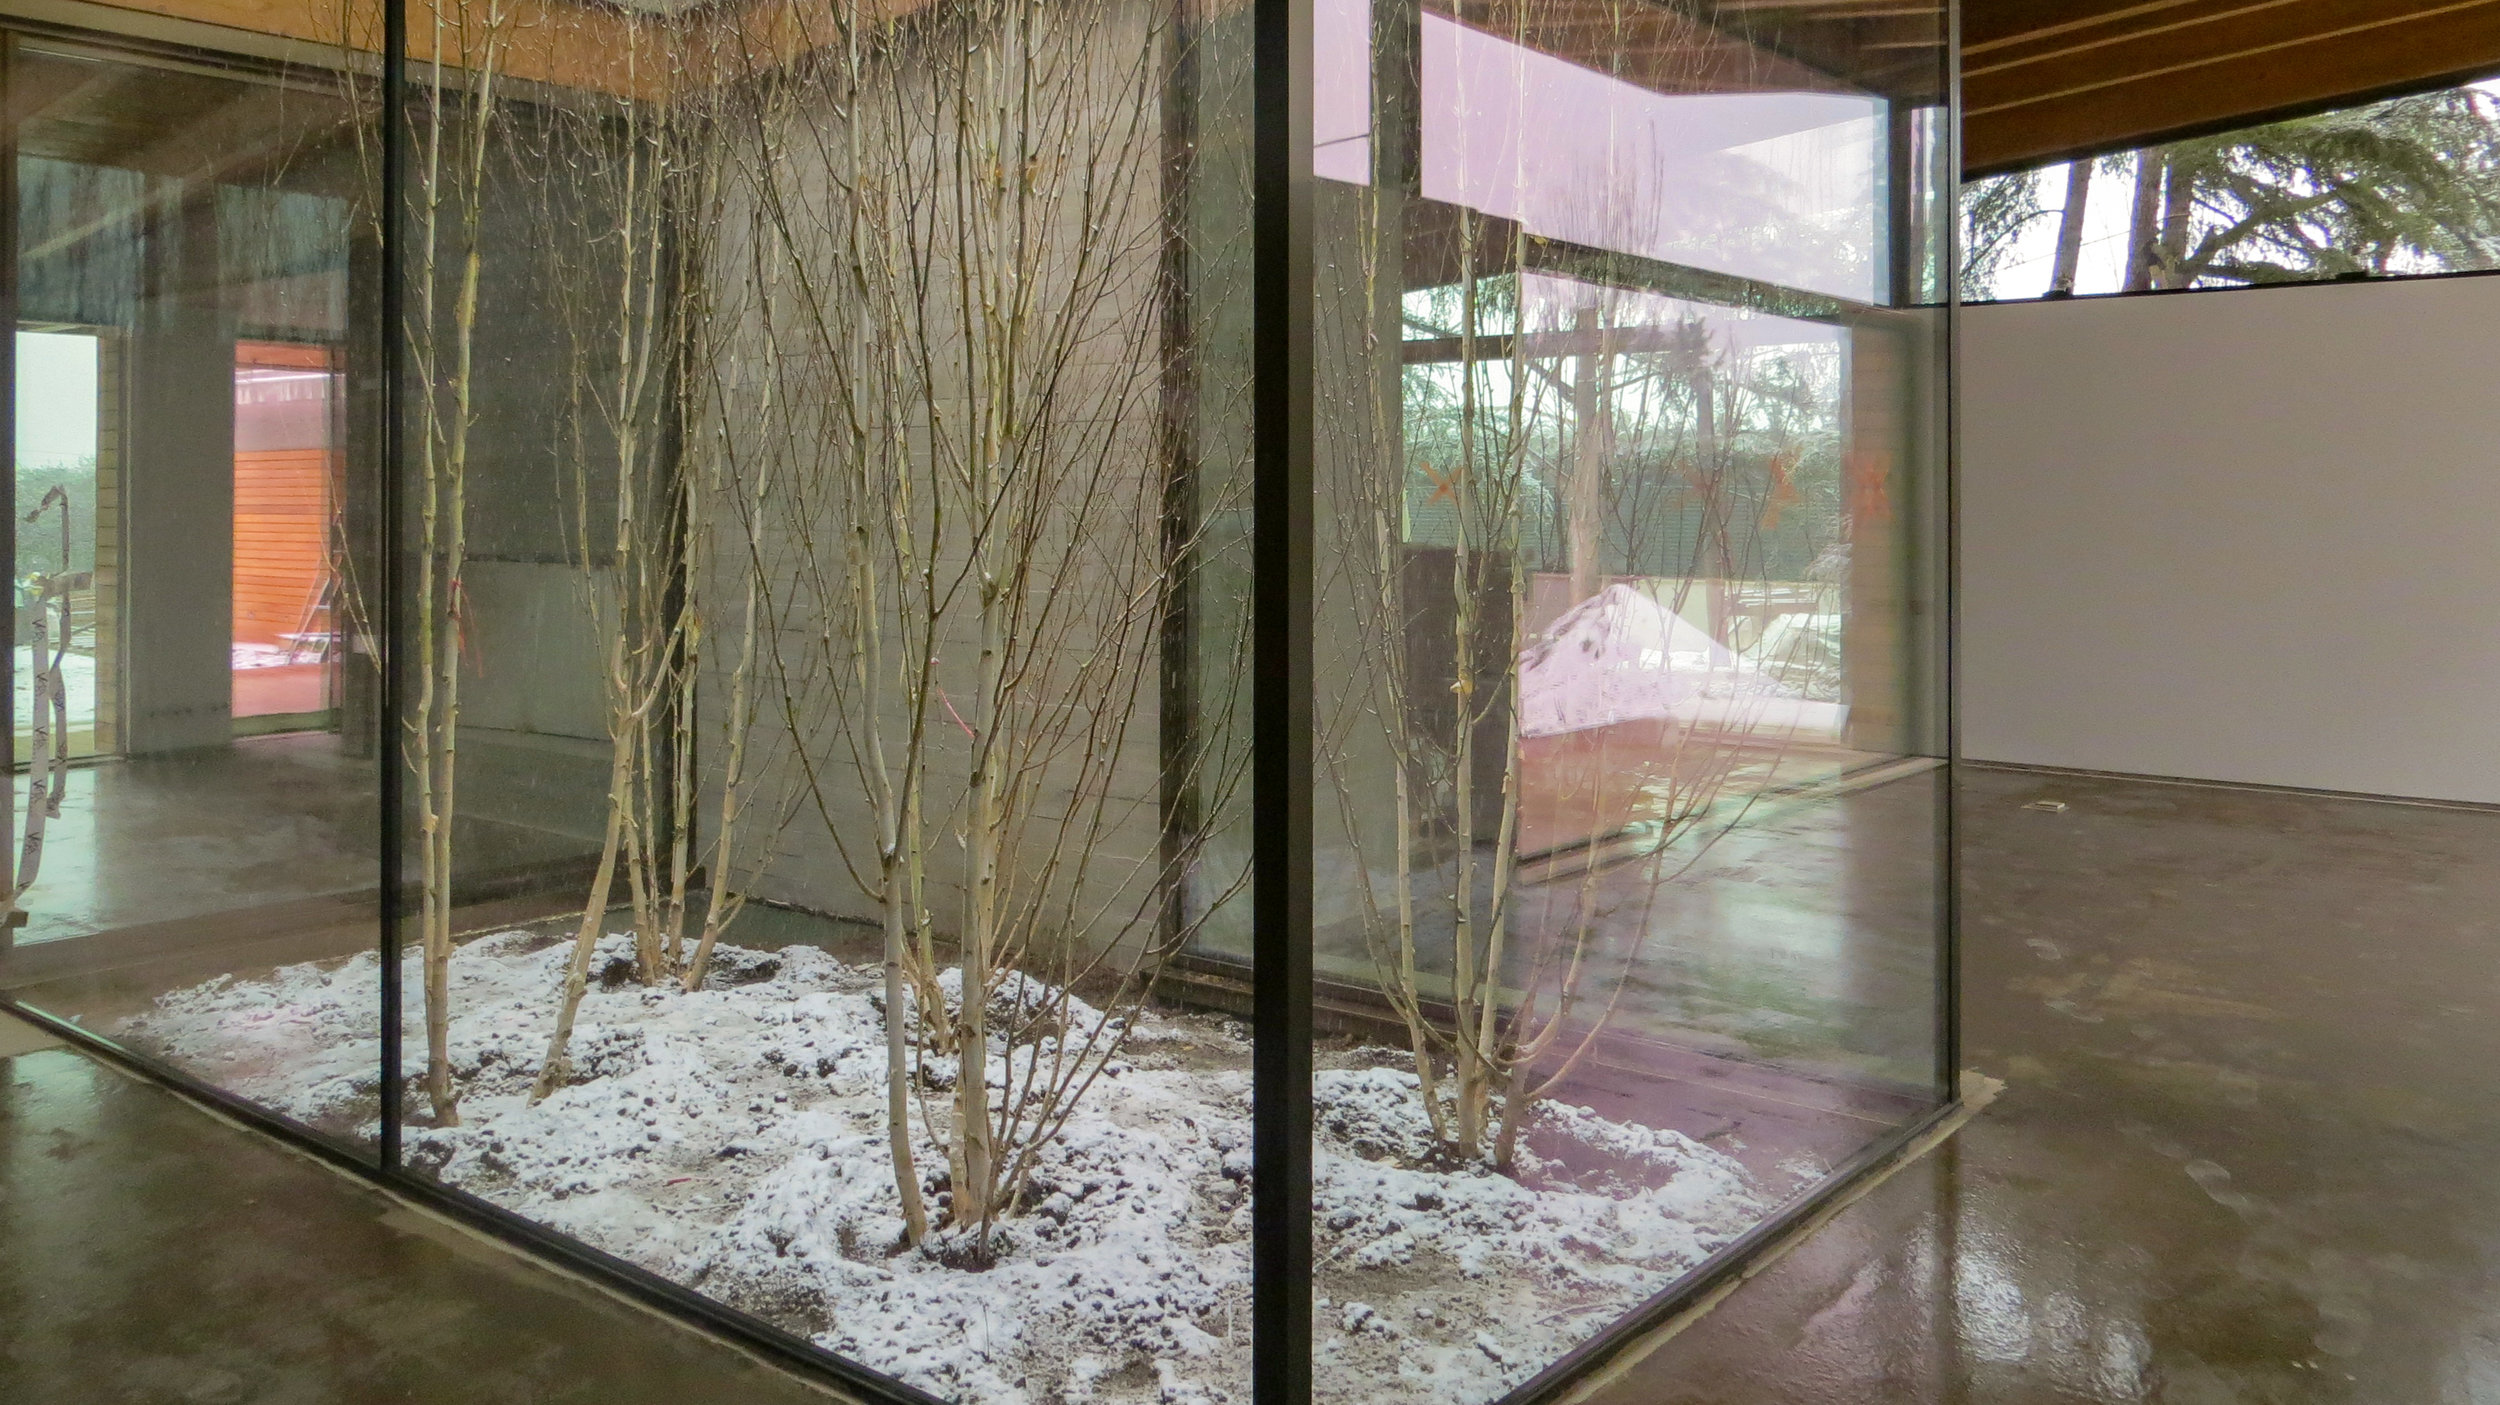 The snow is covering the floor of the interior garden.